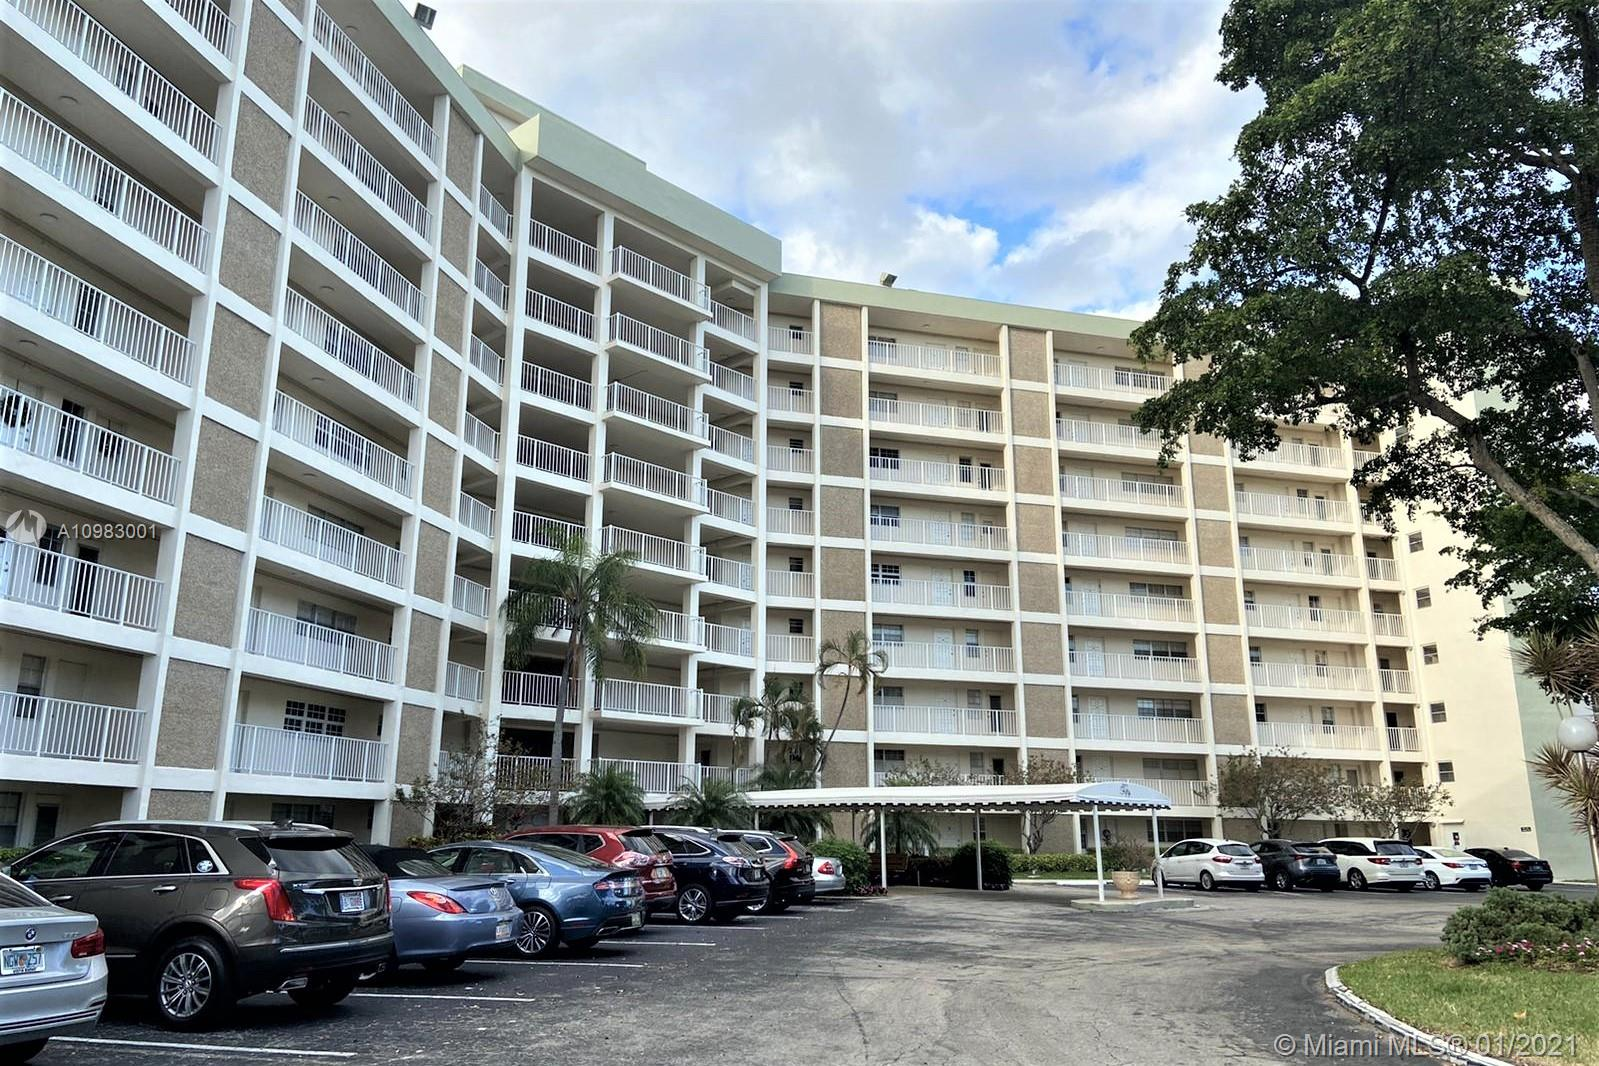 Great unit at Palm Aire Country Club. unit renovated bathrooms and wood floor all truth, phenomenal View to the new lakes without any obstructions. enjoy the Palm Aire amenities such as nearby golf, close to casino and shops.. just 10 minutes drive to the beach , perfect location close to major highways. This unit is currently to great and friendly tenants .. they may stay or move by the end of the contract. best Value in Plam Aire ... Bring you offer !!!